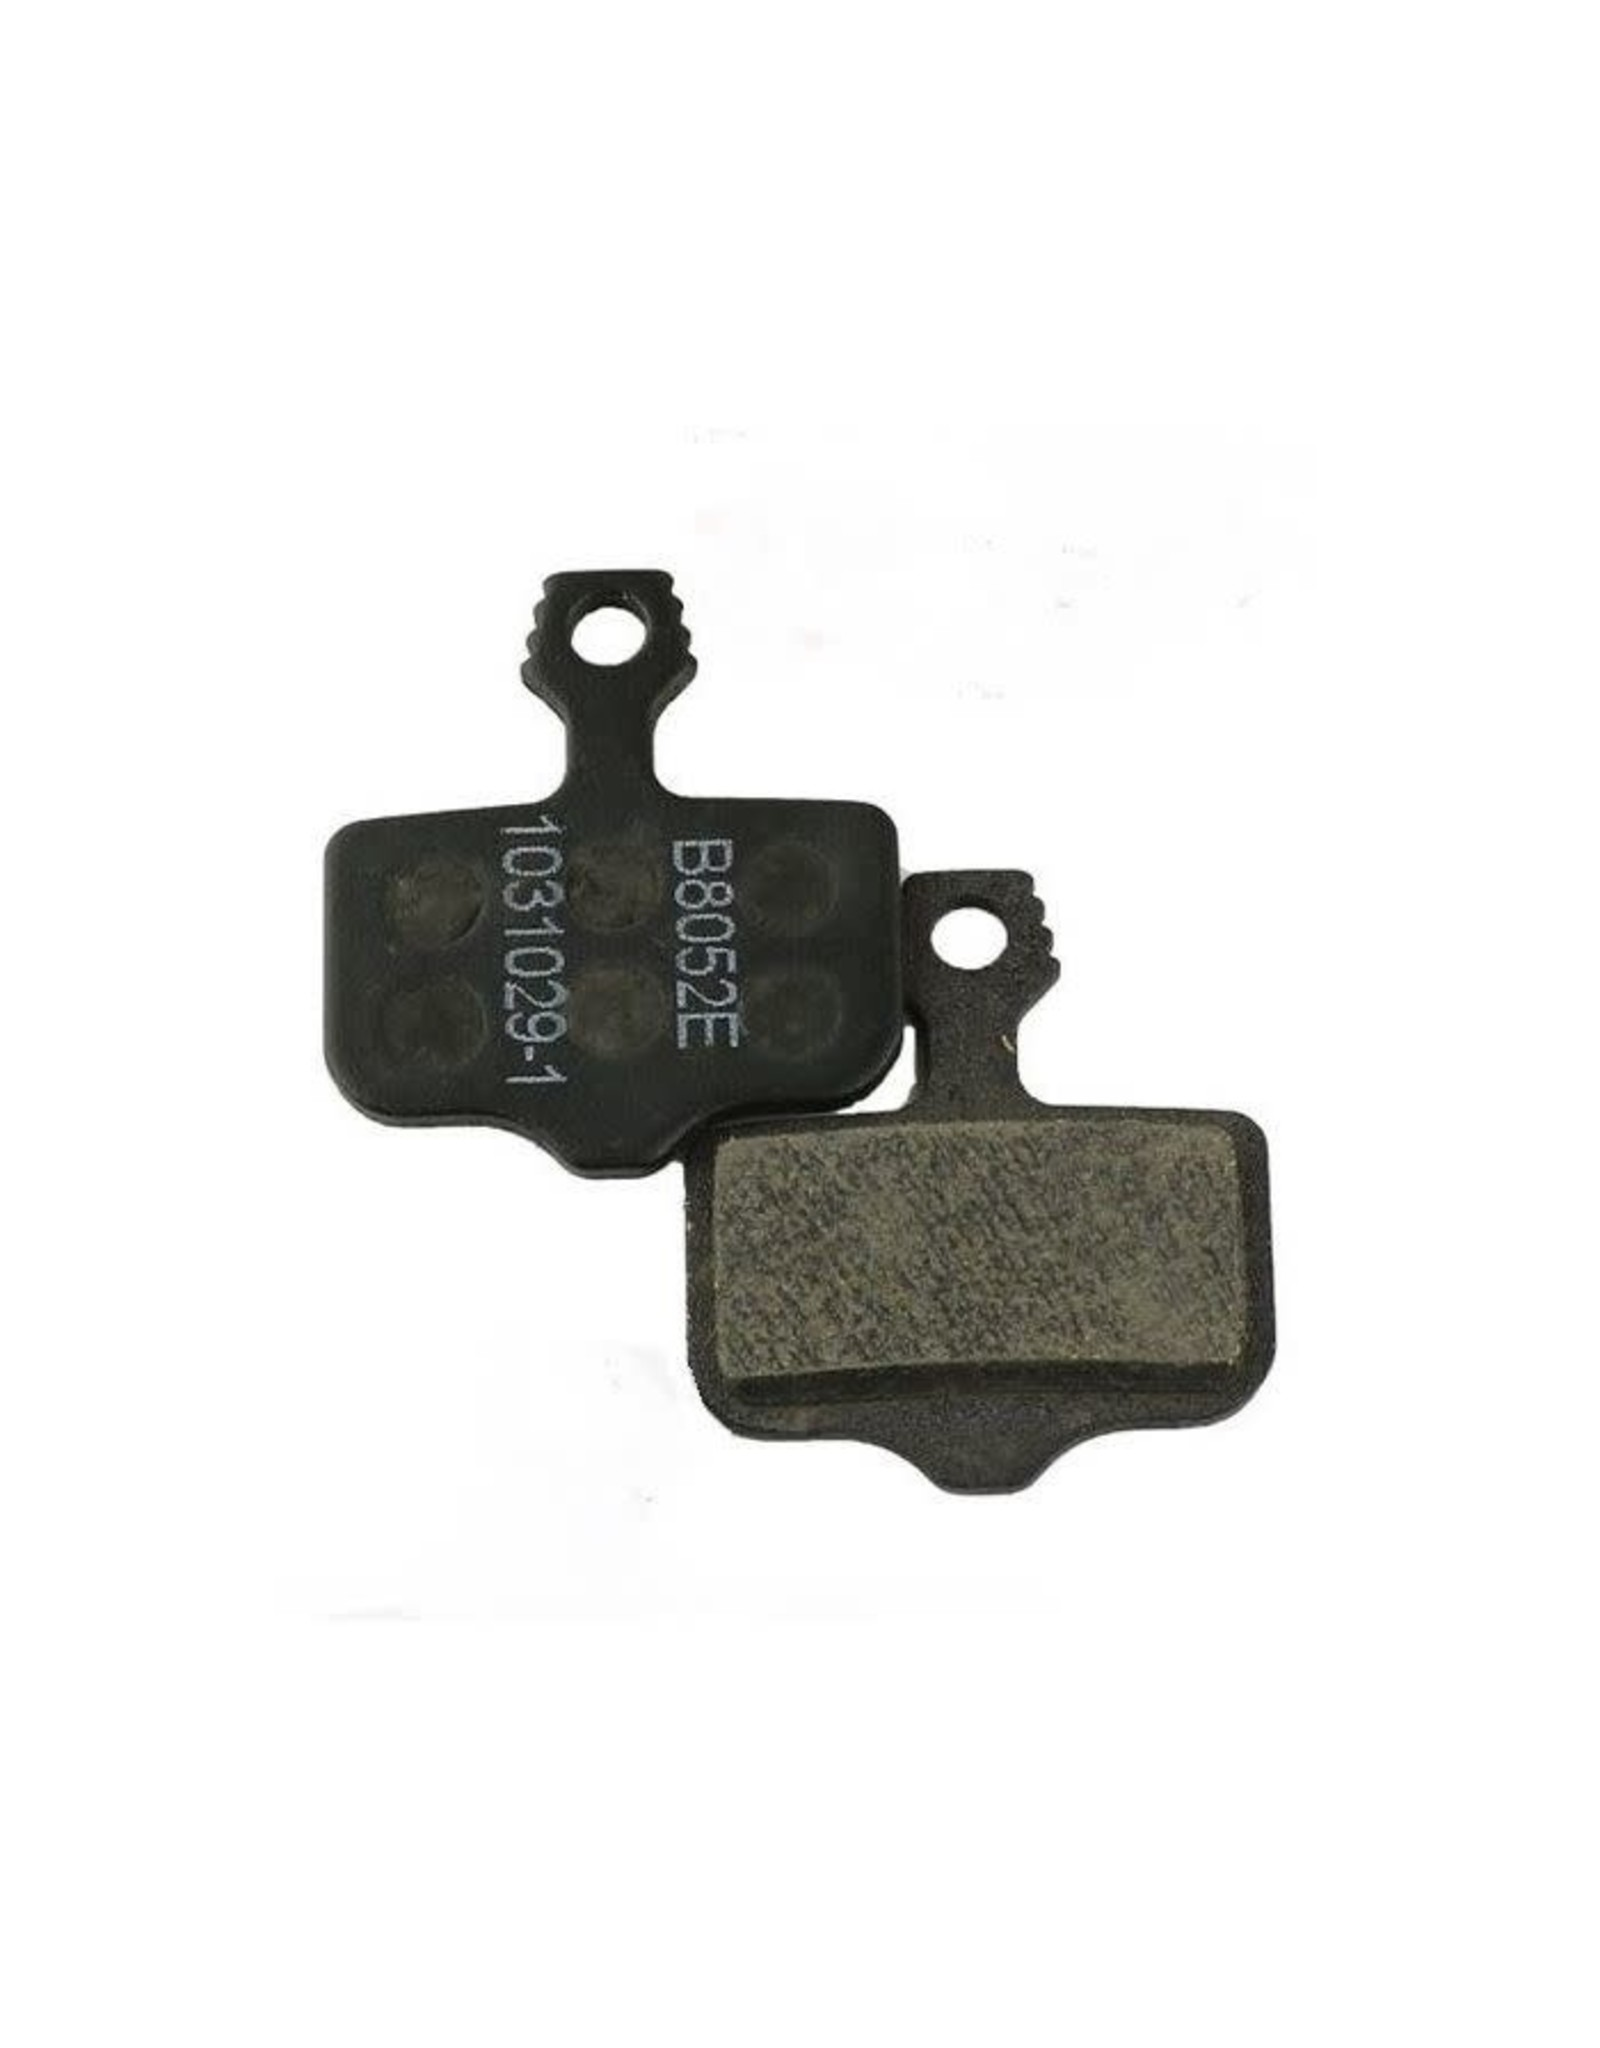 SRAM PADS Steel Backed, For Level, Elixir, and 2-Piece Road